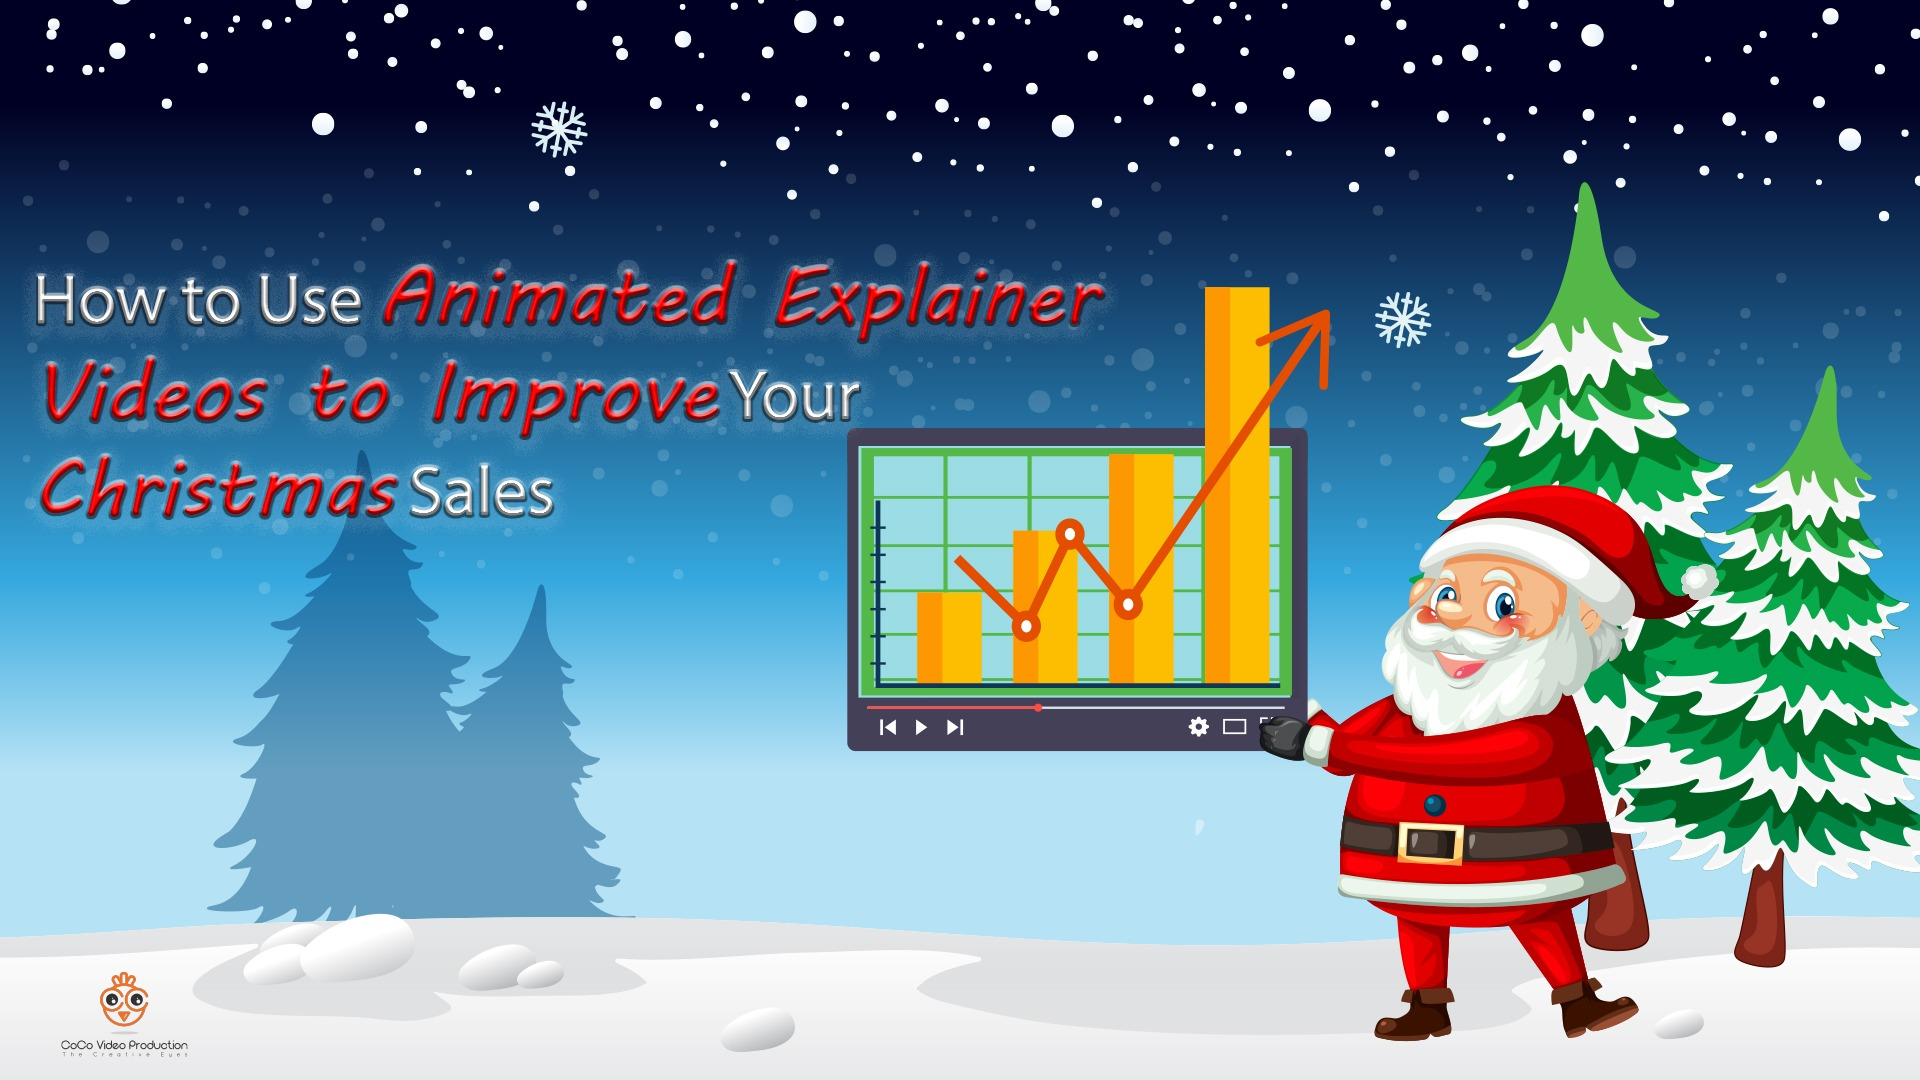 How to Use Animated Explainer Videos to Improve Your Christmas Sales